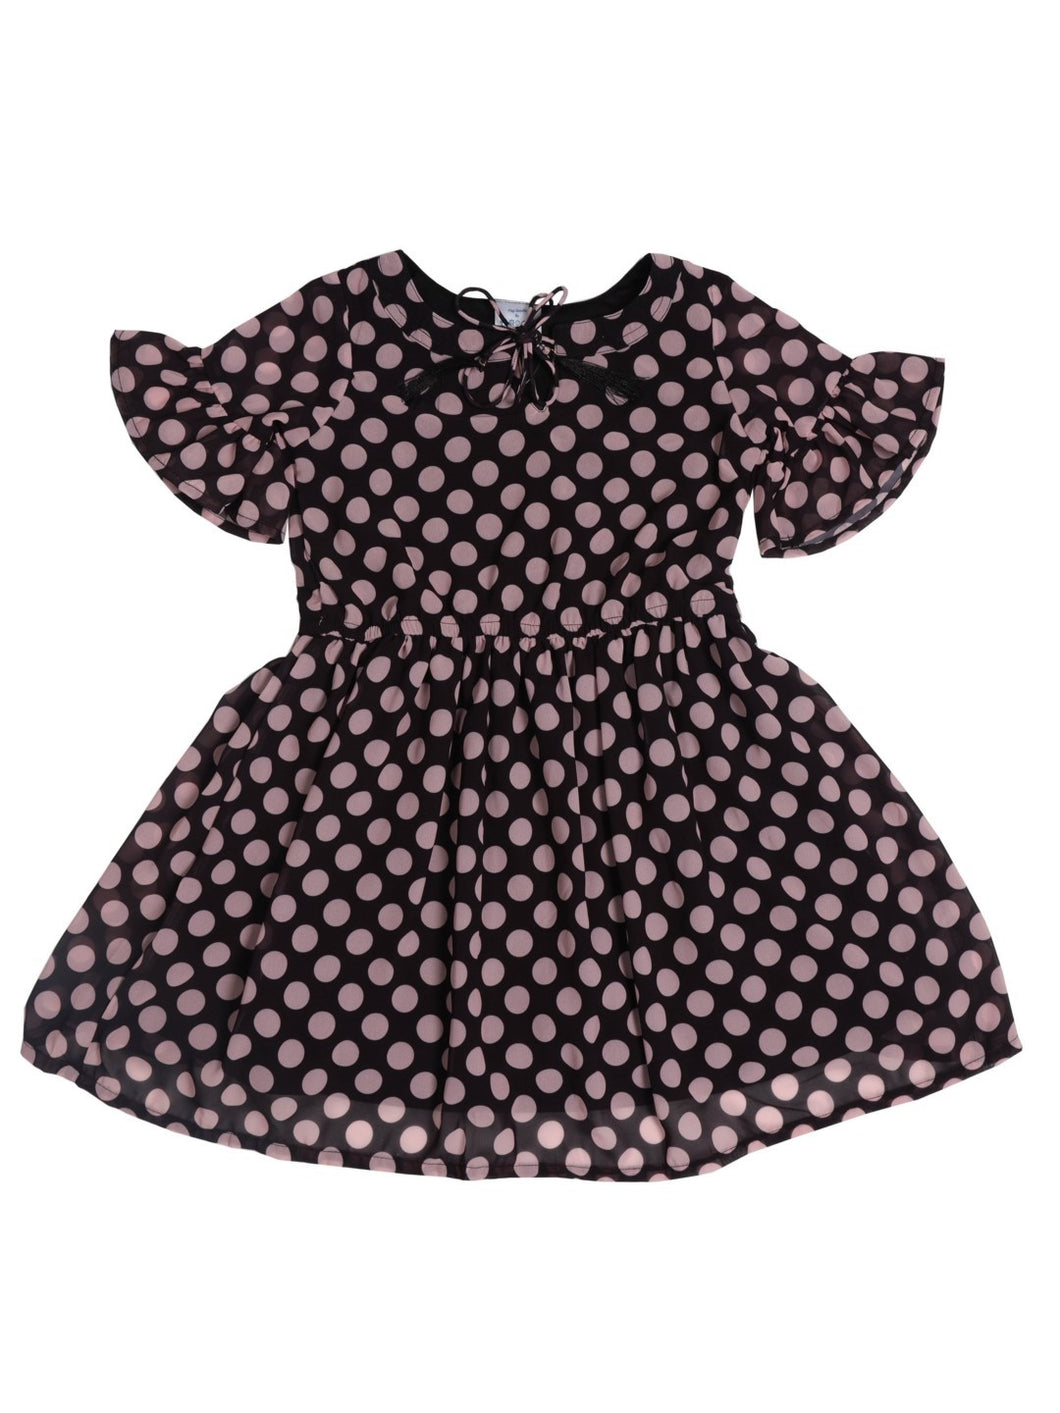 Black Polka Printed Bell Sleeve Dress With Neck Tie Up